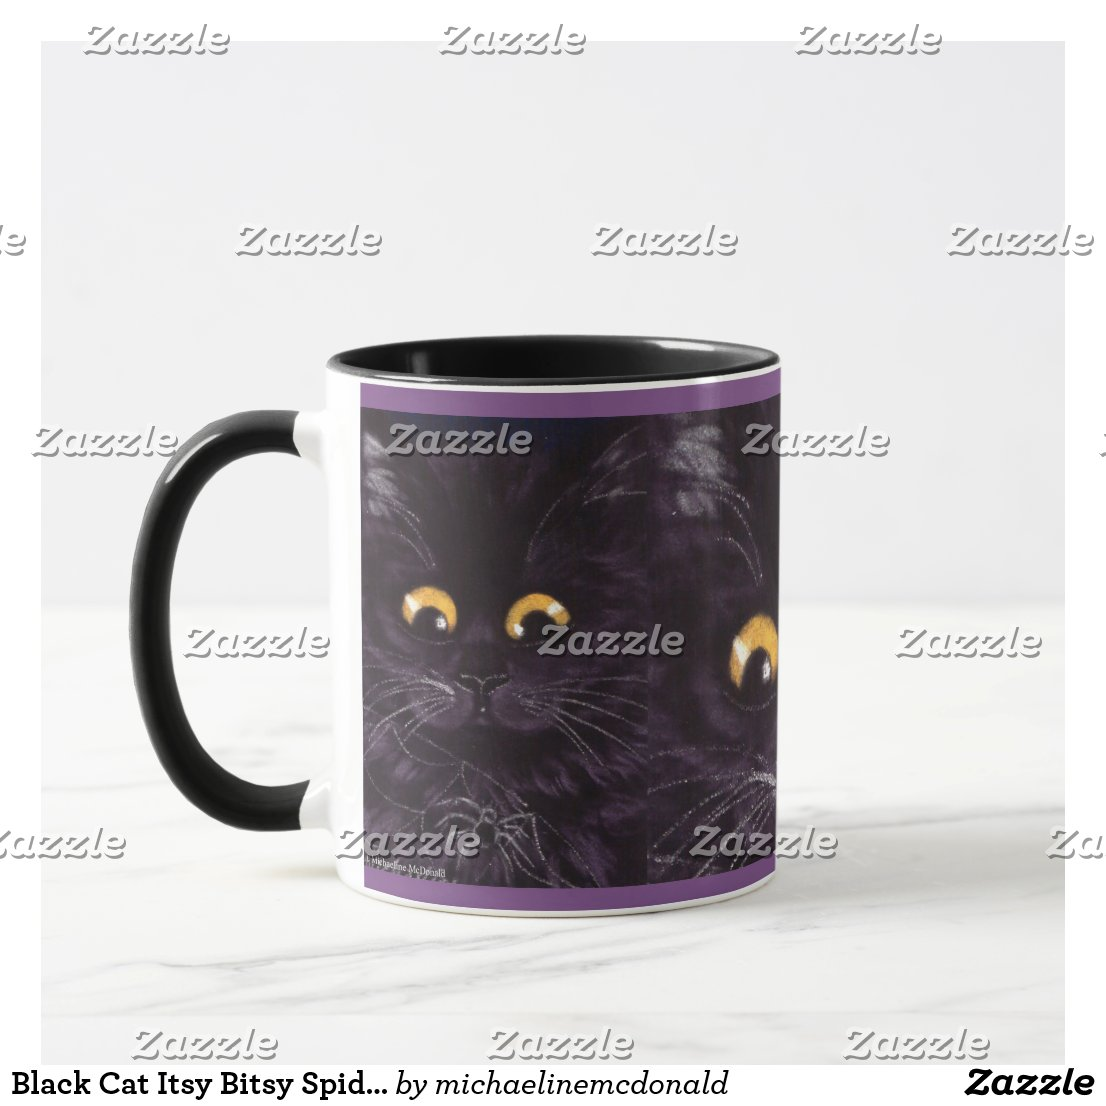 Black Cat Itsy Bitsy Spider Scaredy Cat Mug